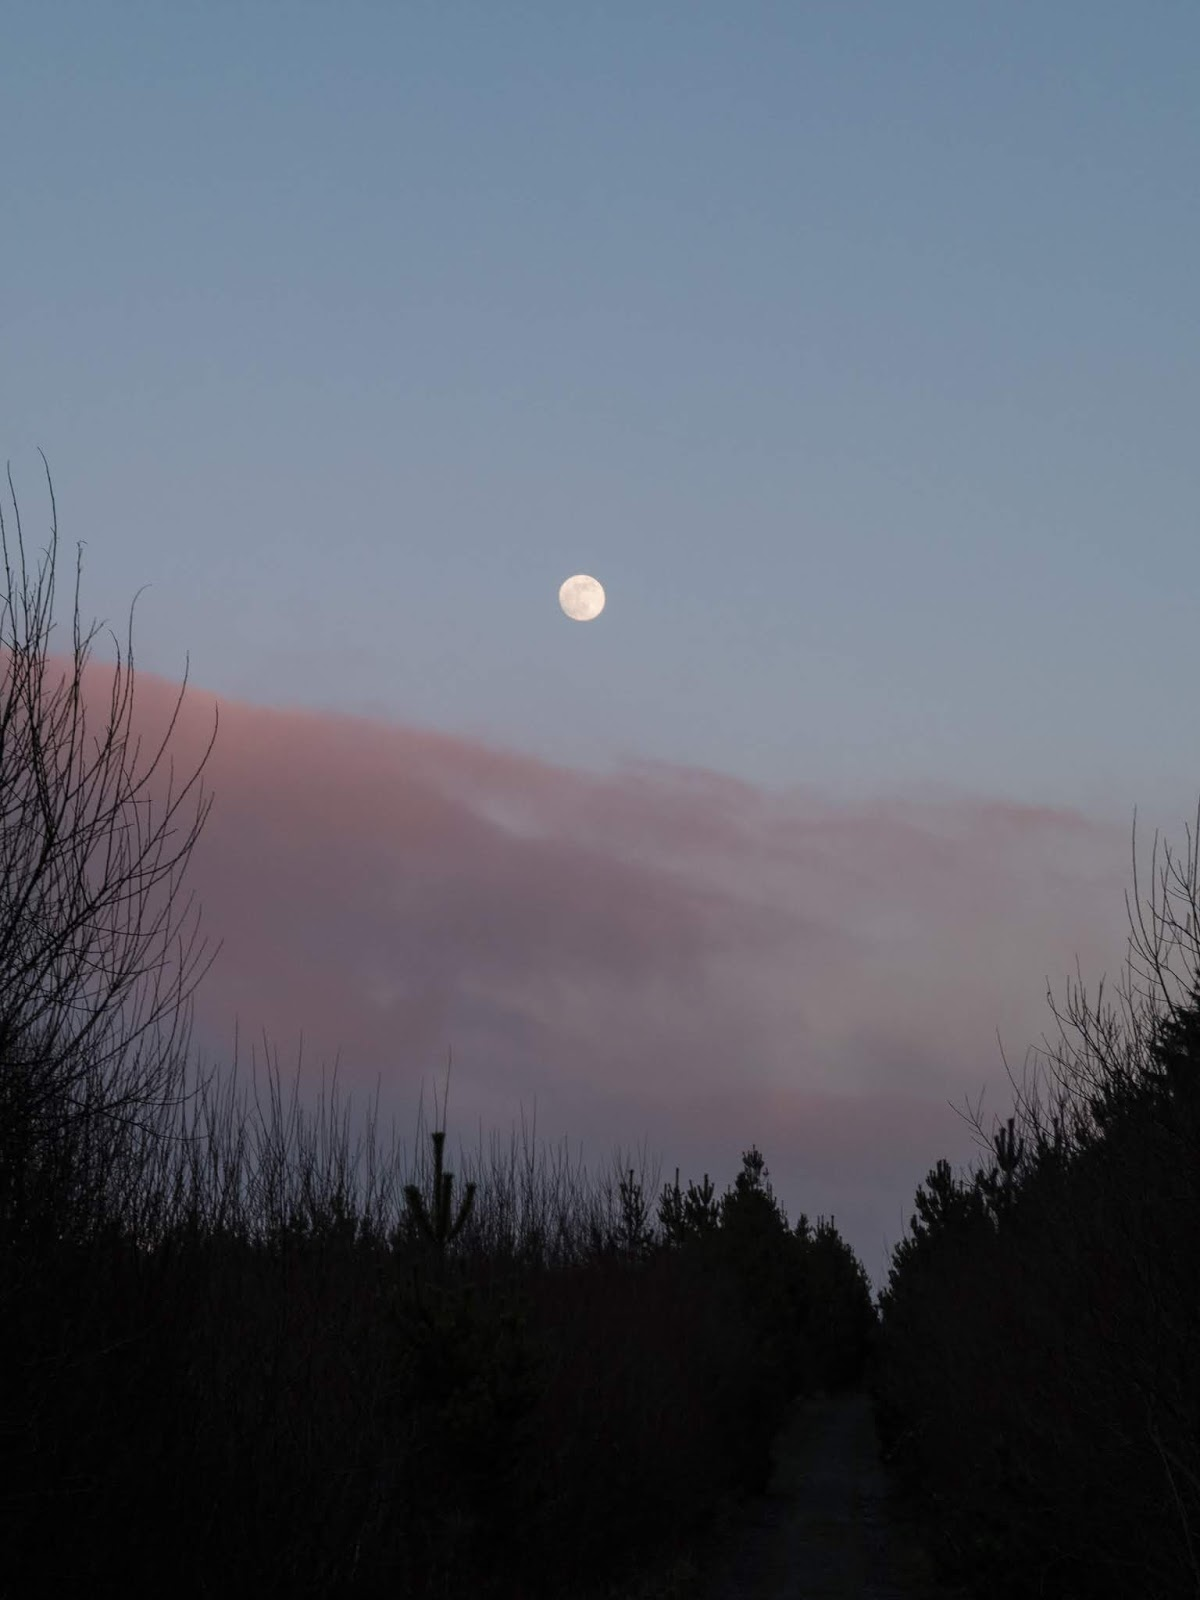 Moon rise over the forestry in the Boggeragh Mountains on a light blue sky and some light pink clouds.